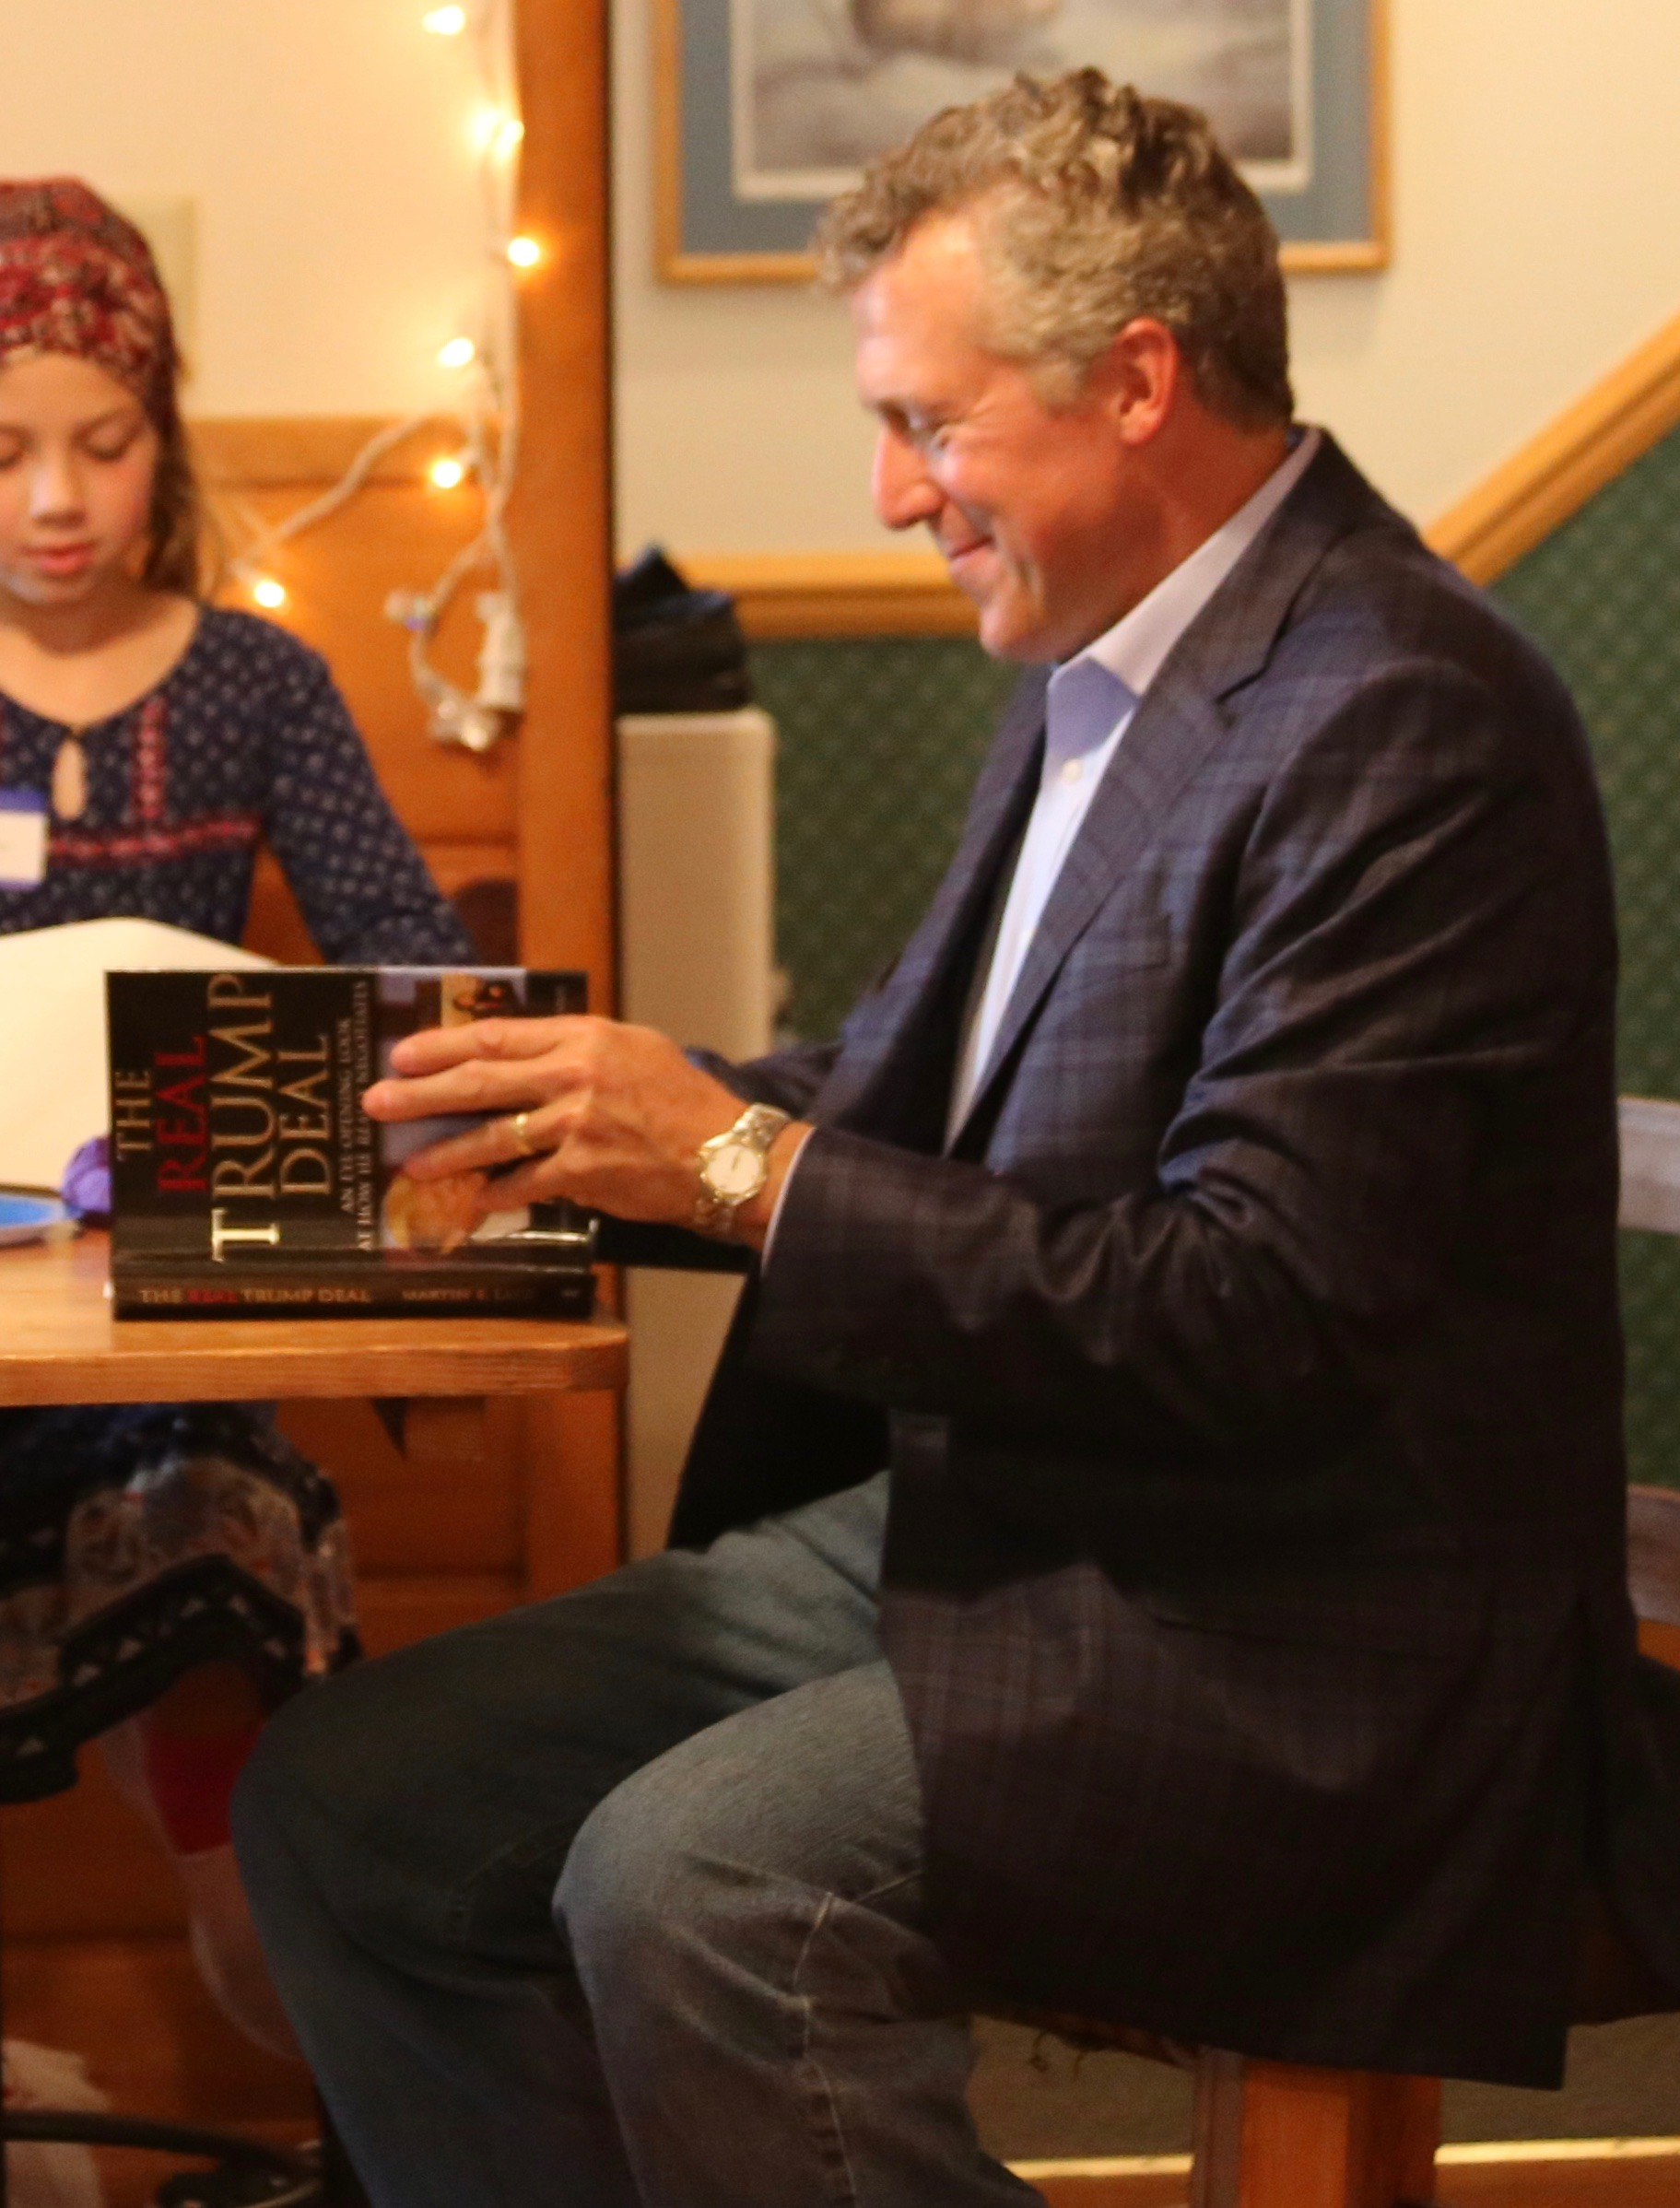 Photo of Negotiation Expert Marty Latz at book signing